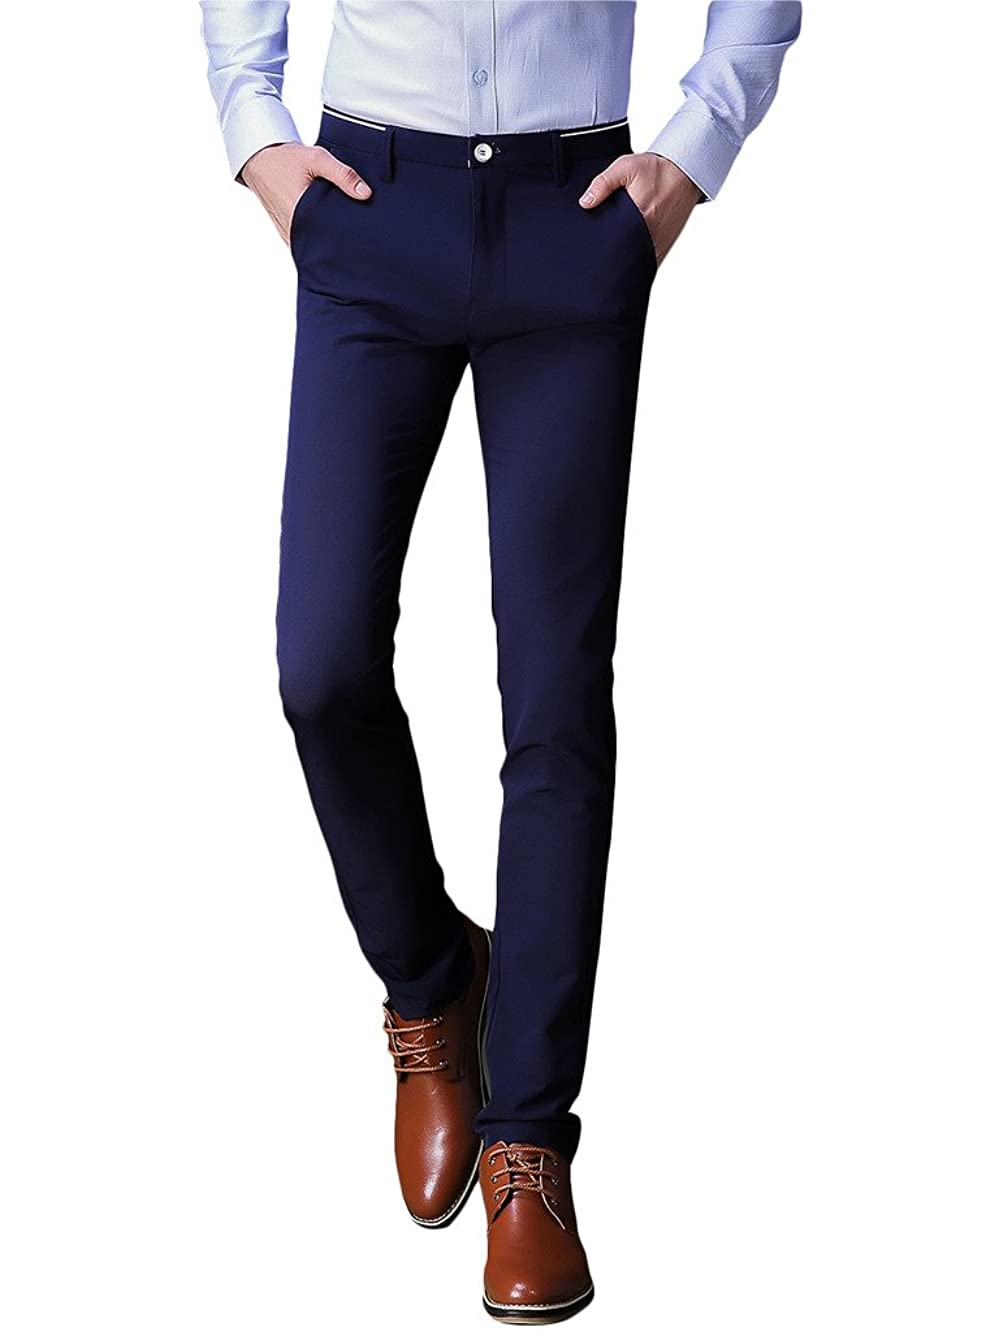 INFLATION Mens Wrinkle-Free Slim-Tapered Stretch Casual Pants,Flat Front Suit Pants